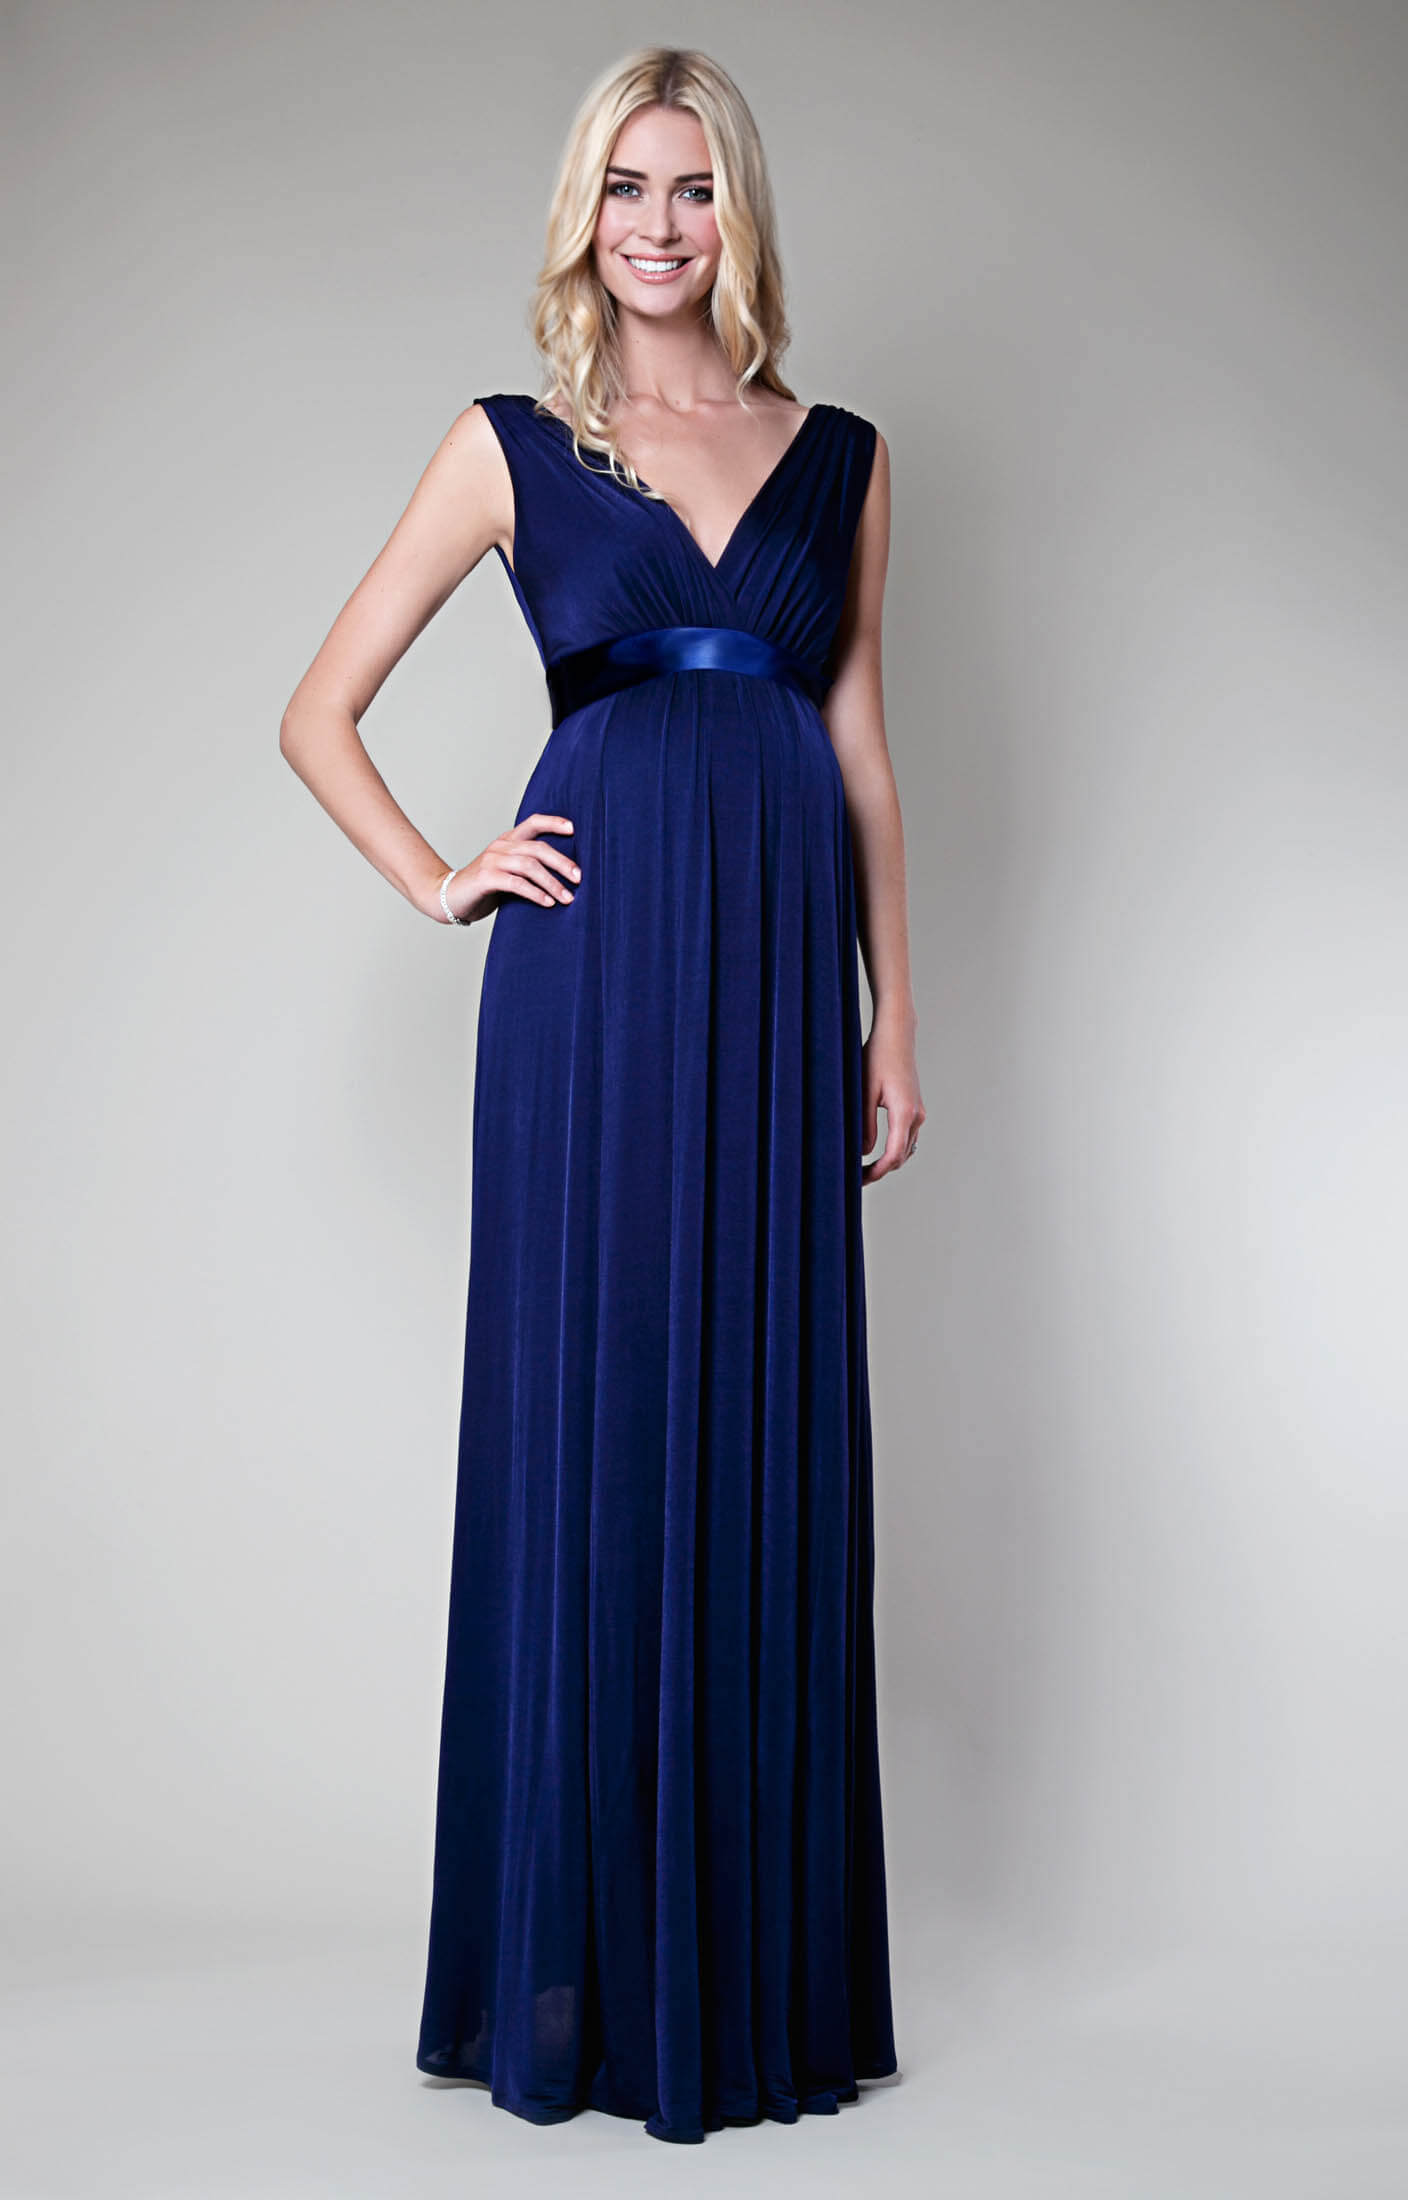 Anastasia maternity gown eclipse blue maternity wedding dresses anastasia maternity gown eclipse blue by tiffany rose ombrellifo Images